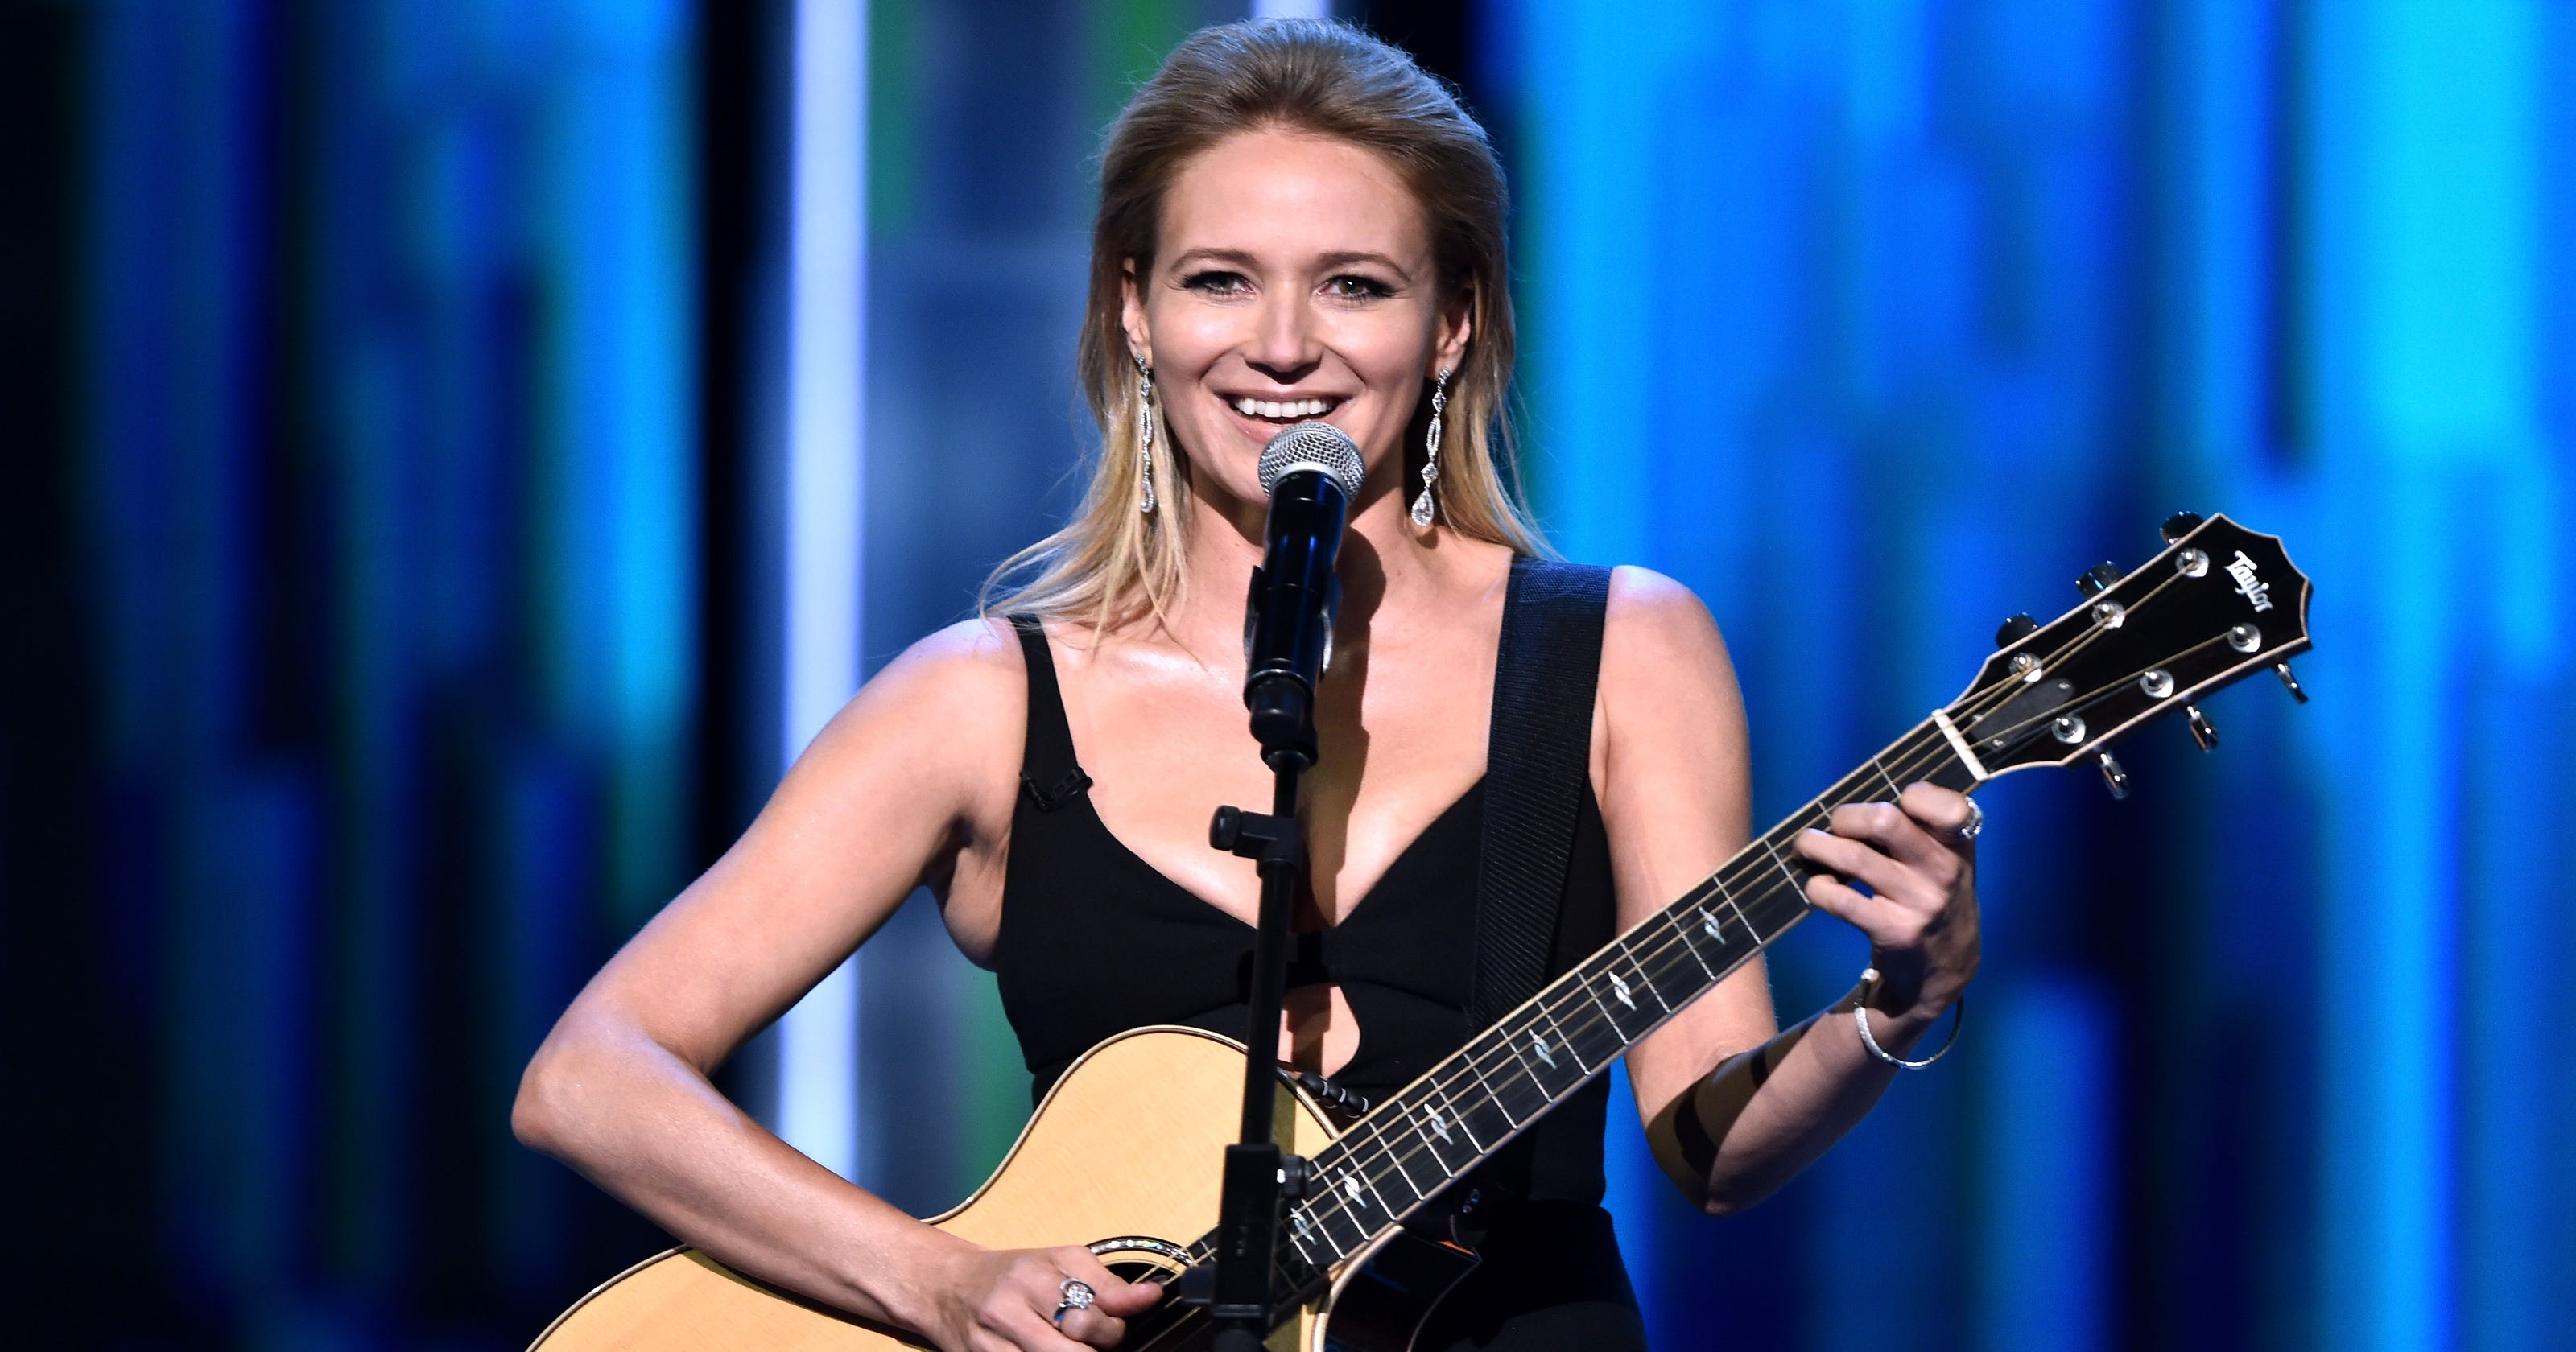 Jewel roasted Rob Lowe with a parody of her own song